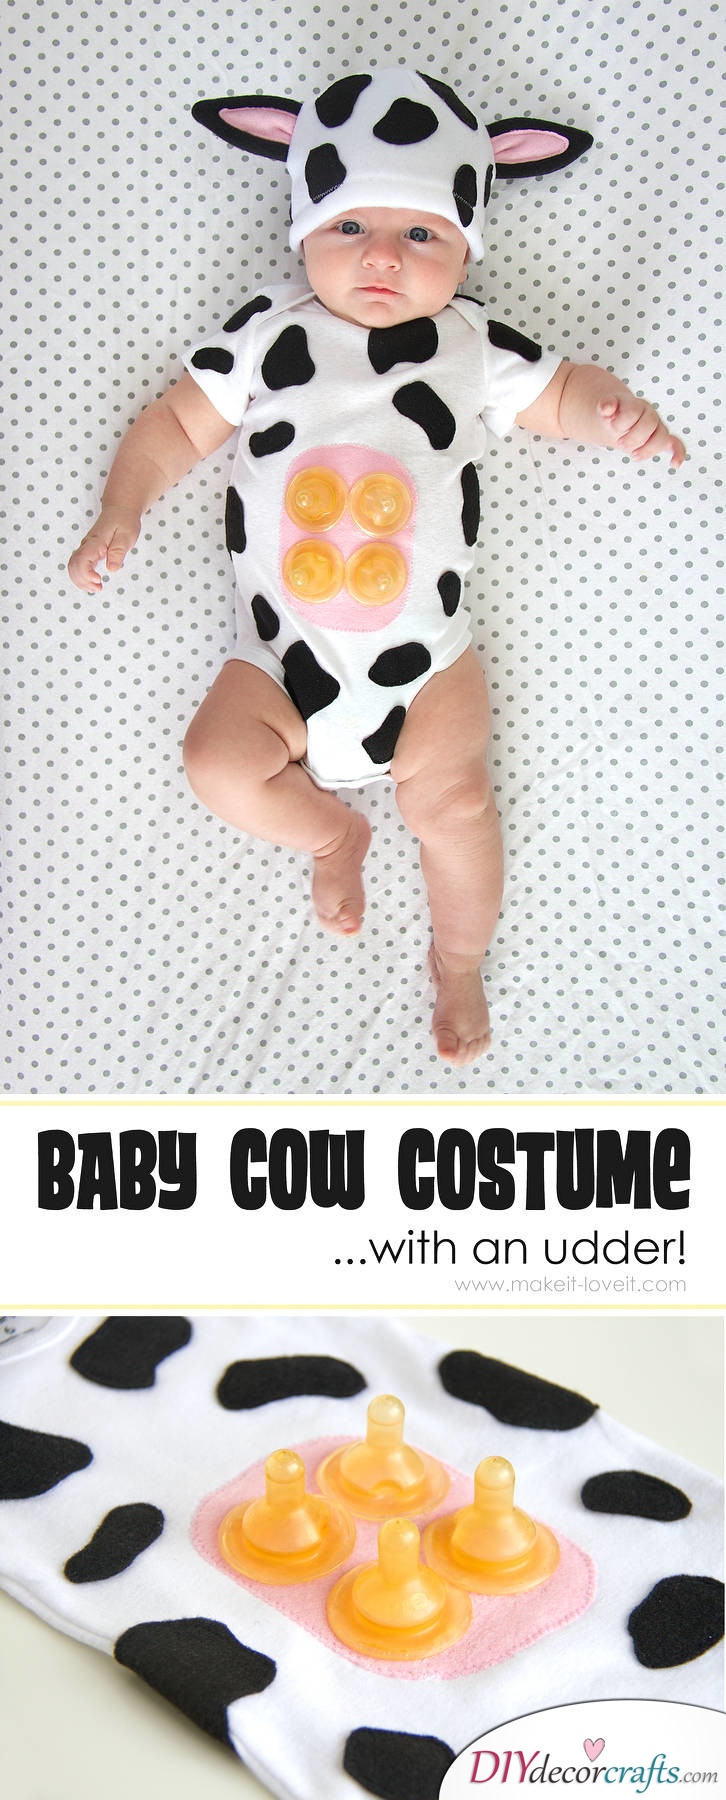 The Best DIY Halloween Costume Ideas For Kids, Baby Cow